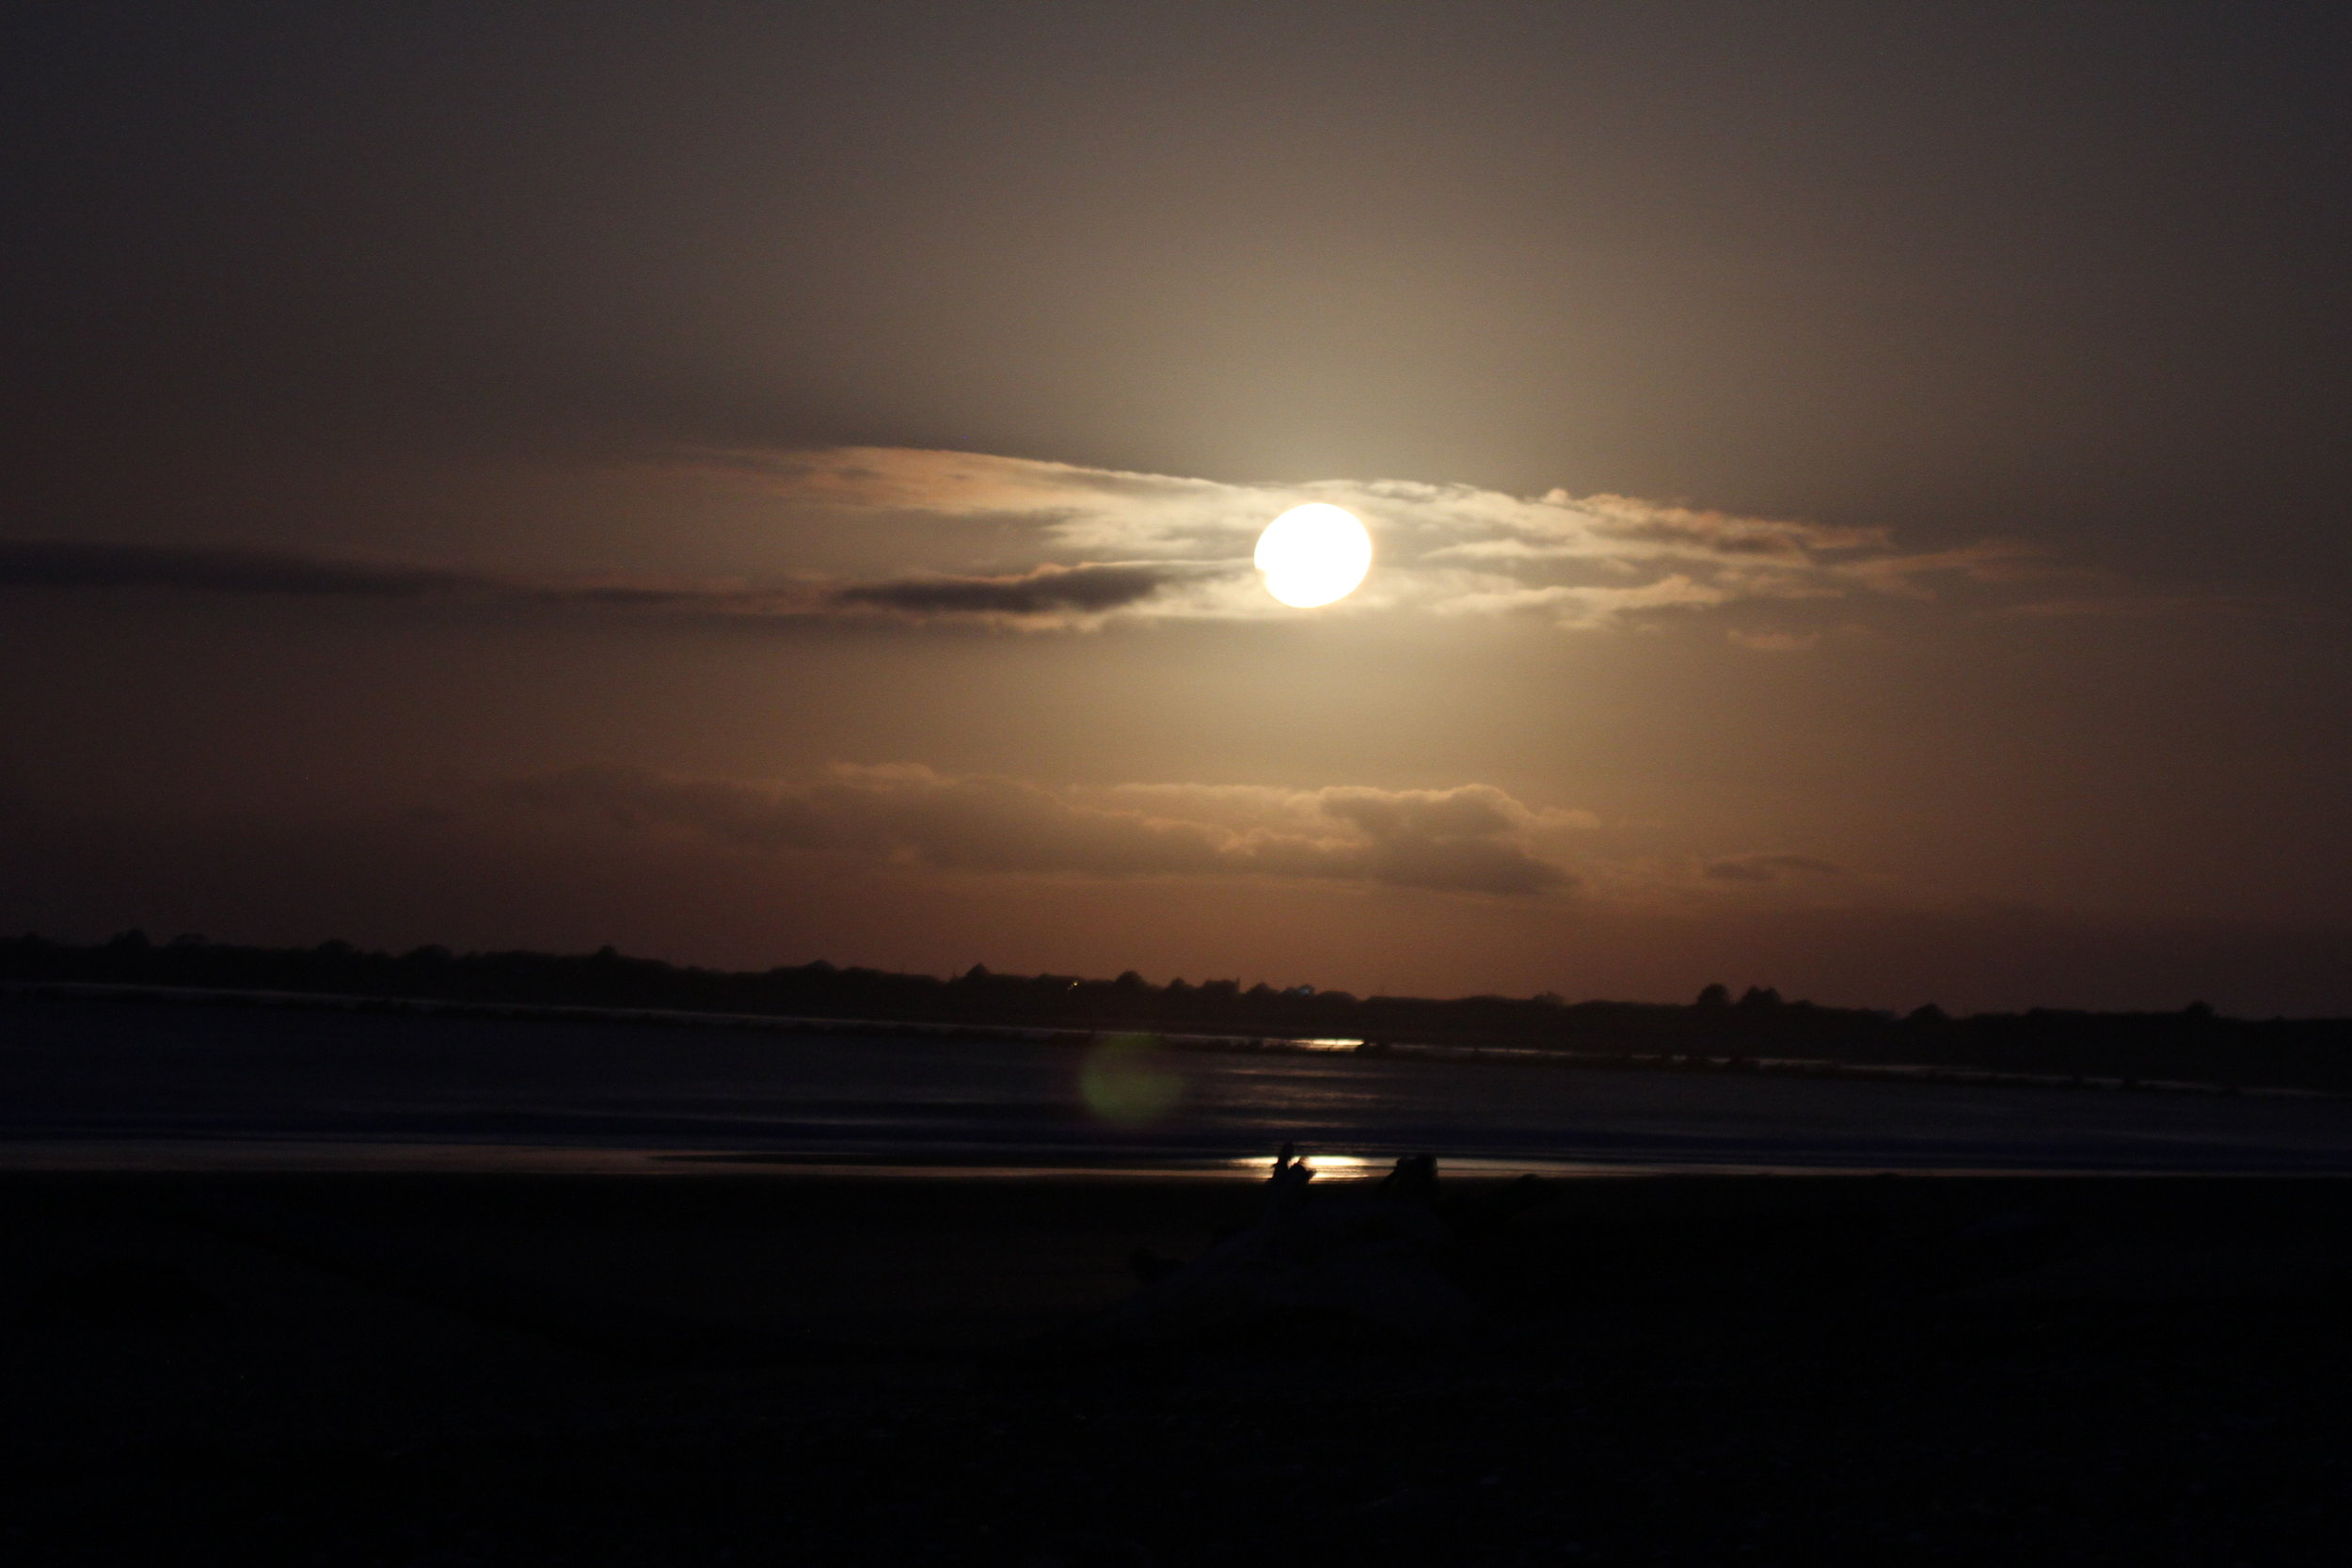 Full moon close to setting, Damon Point. Tanya Pluth photo.